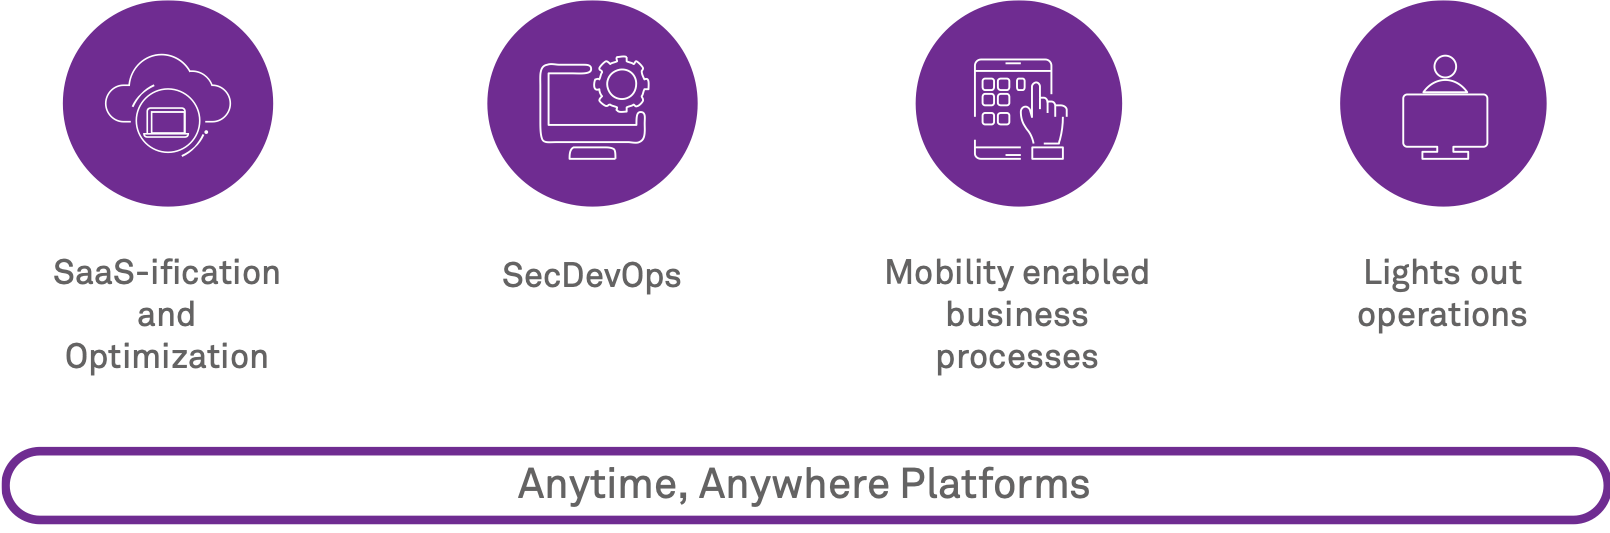 Anytime, Anywhere Platforms